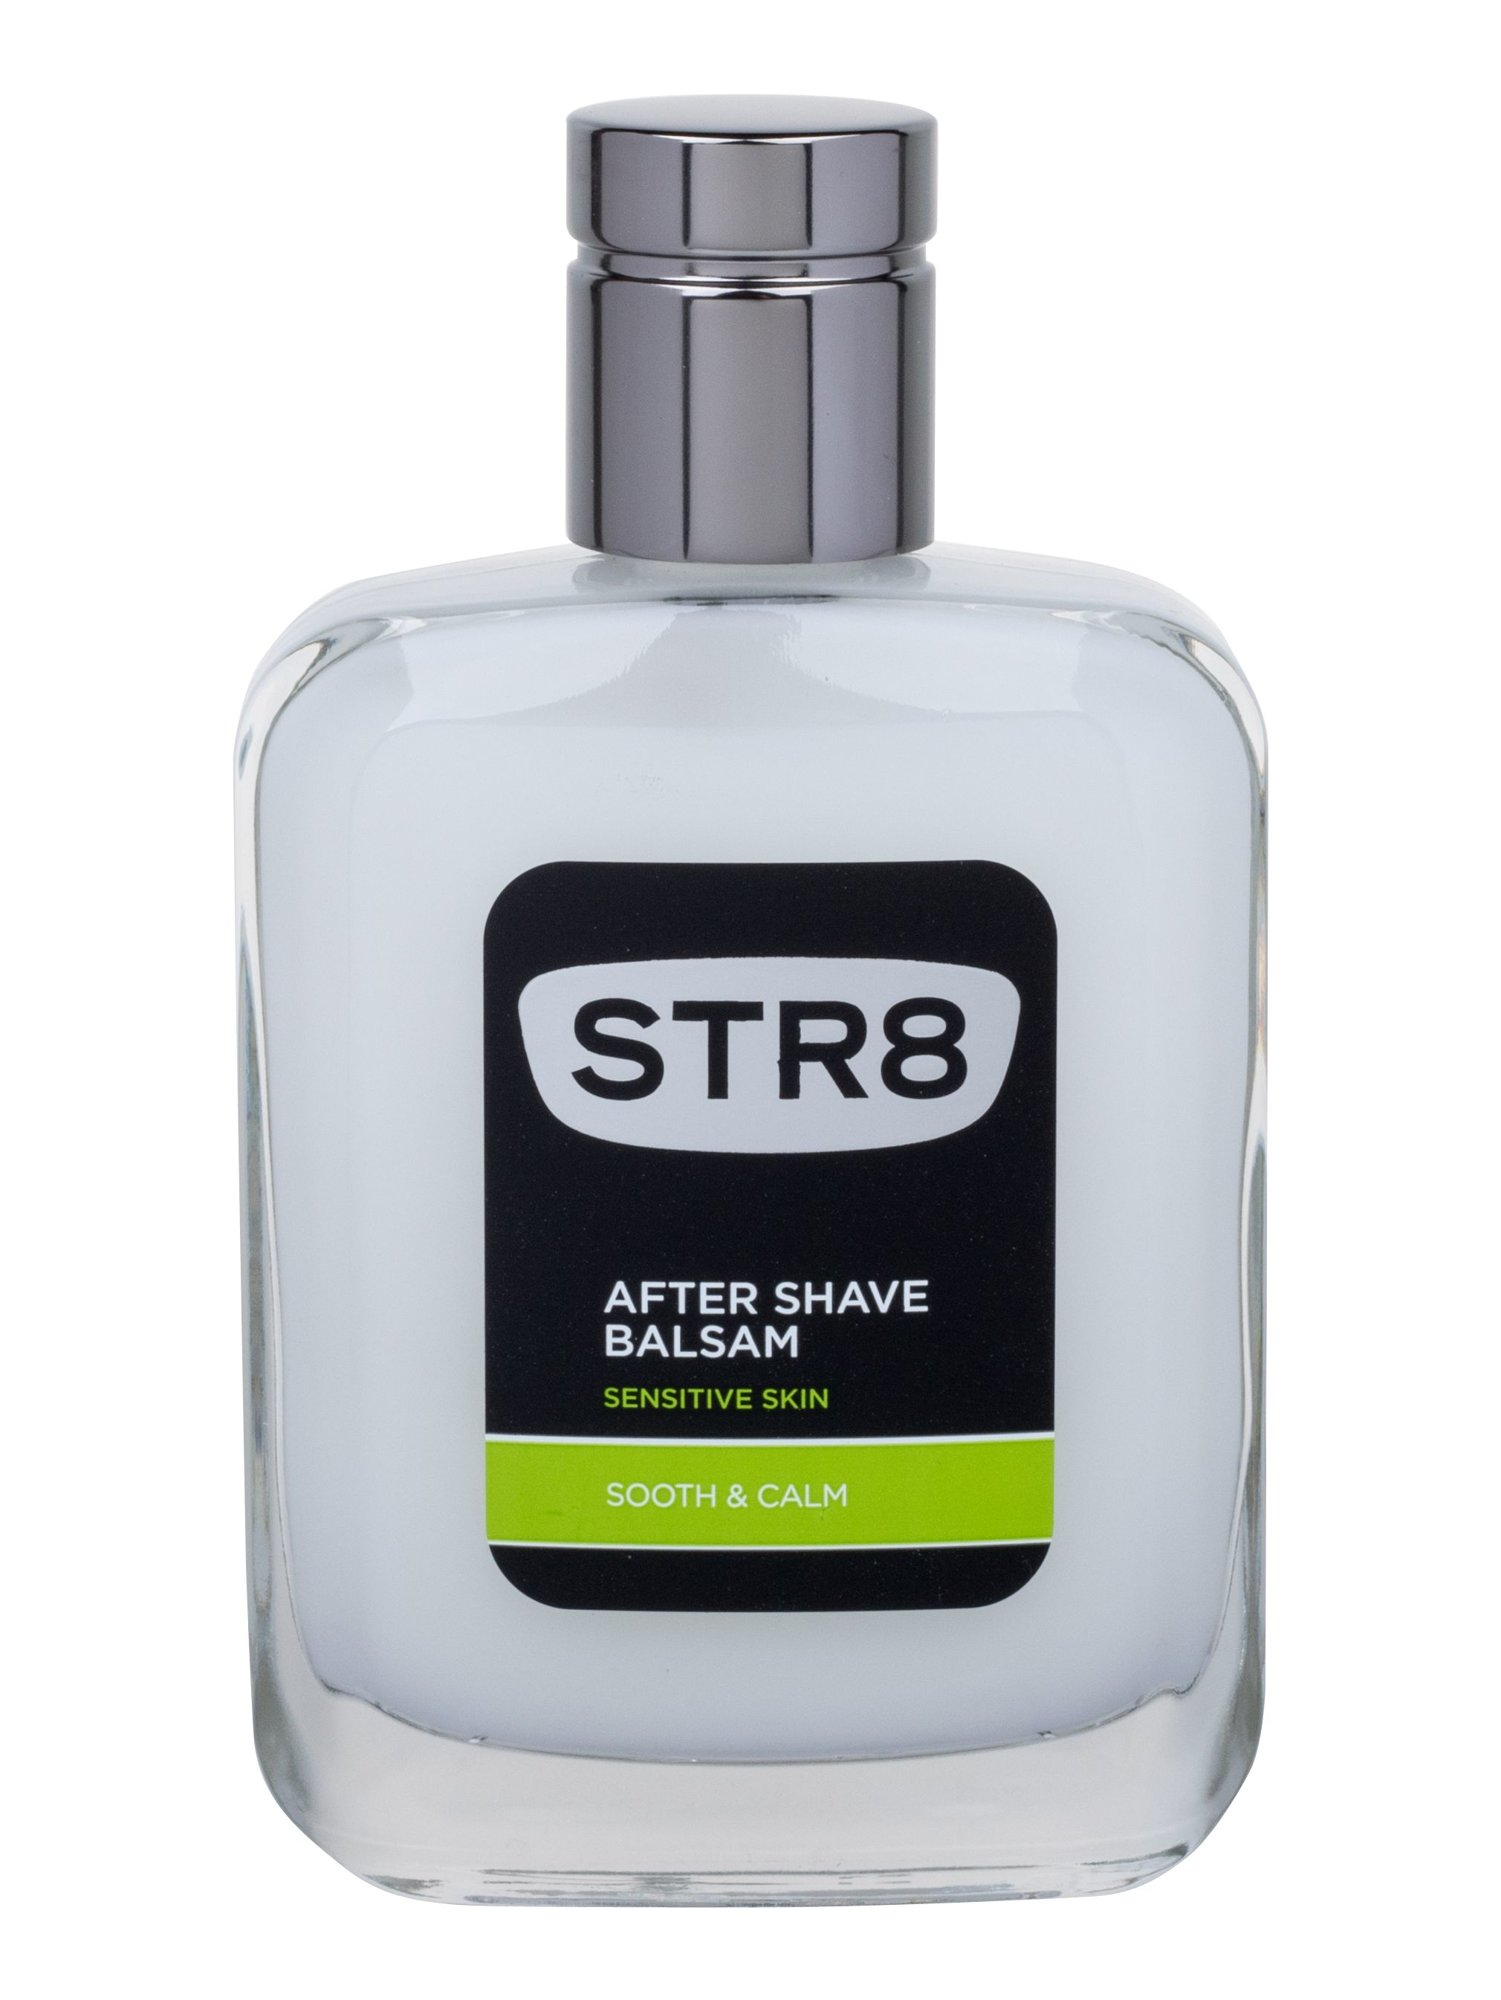 STR8 Sooth & Calm After shave balm 100ml